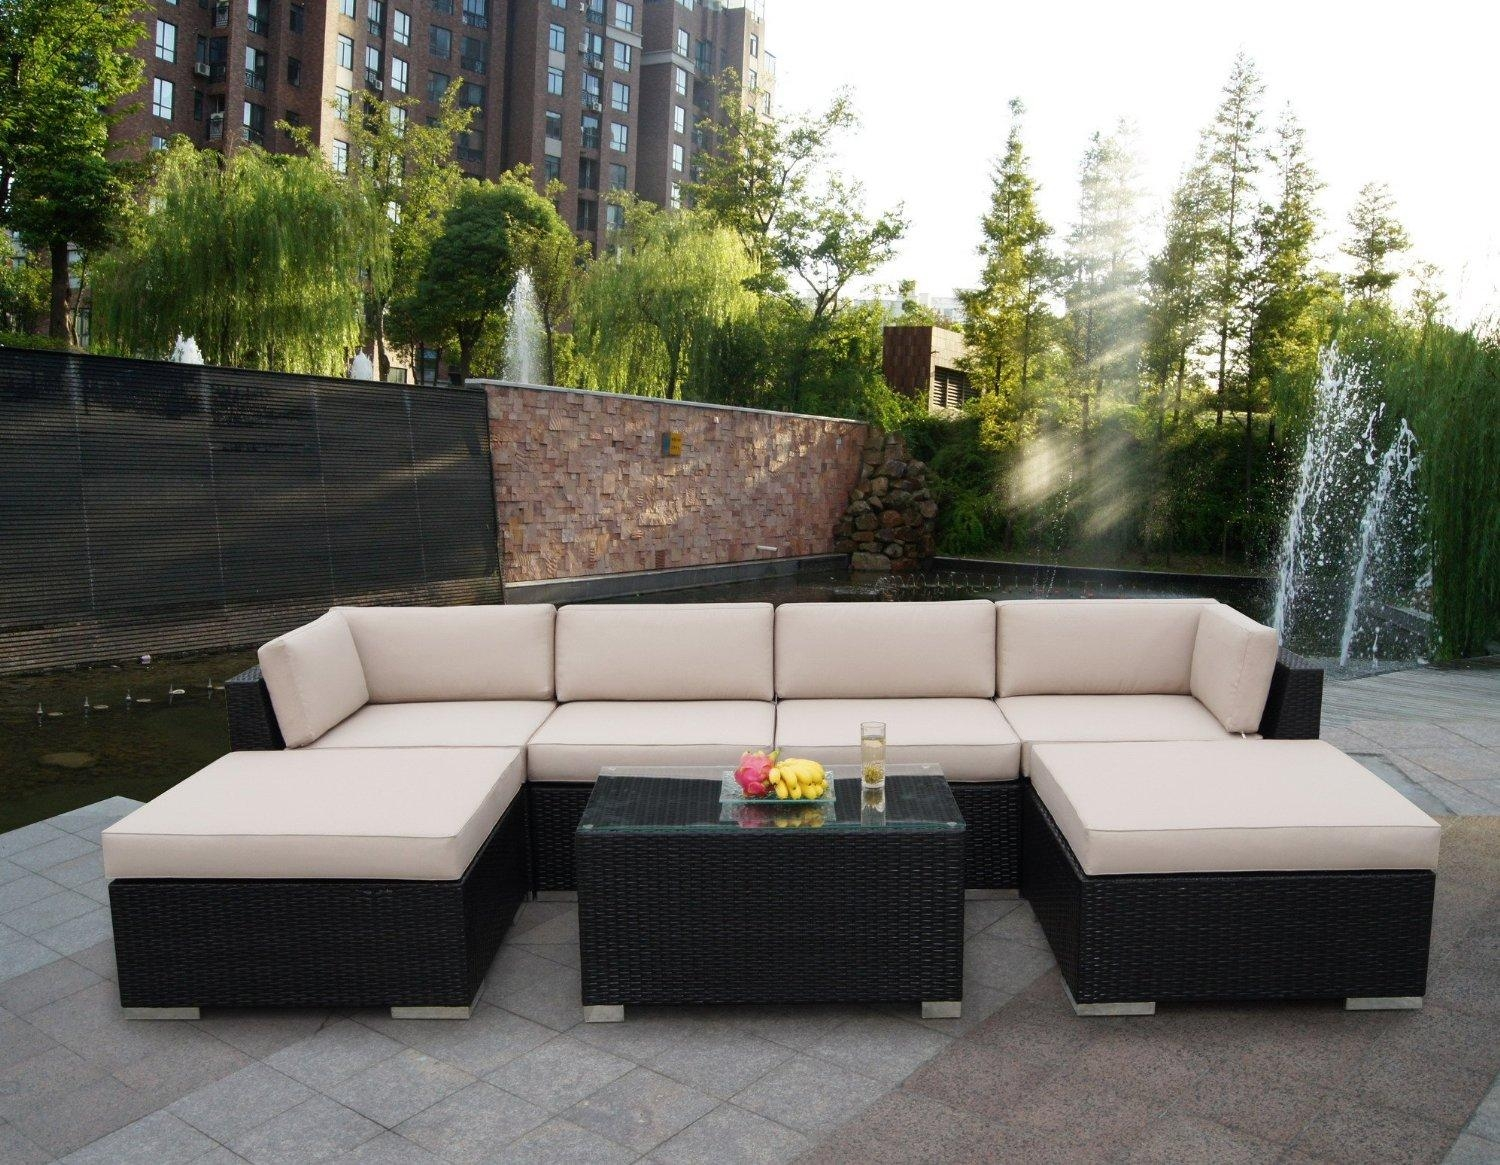 Outdoor Patio Seating Lhu1S4Z – Cnxconsortium | Outdoor Furniture Inside Cheap Patio Sofas (Image 7 of 22)